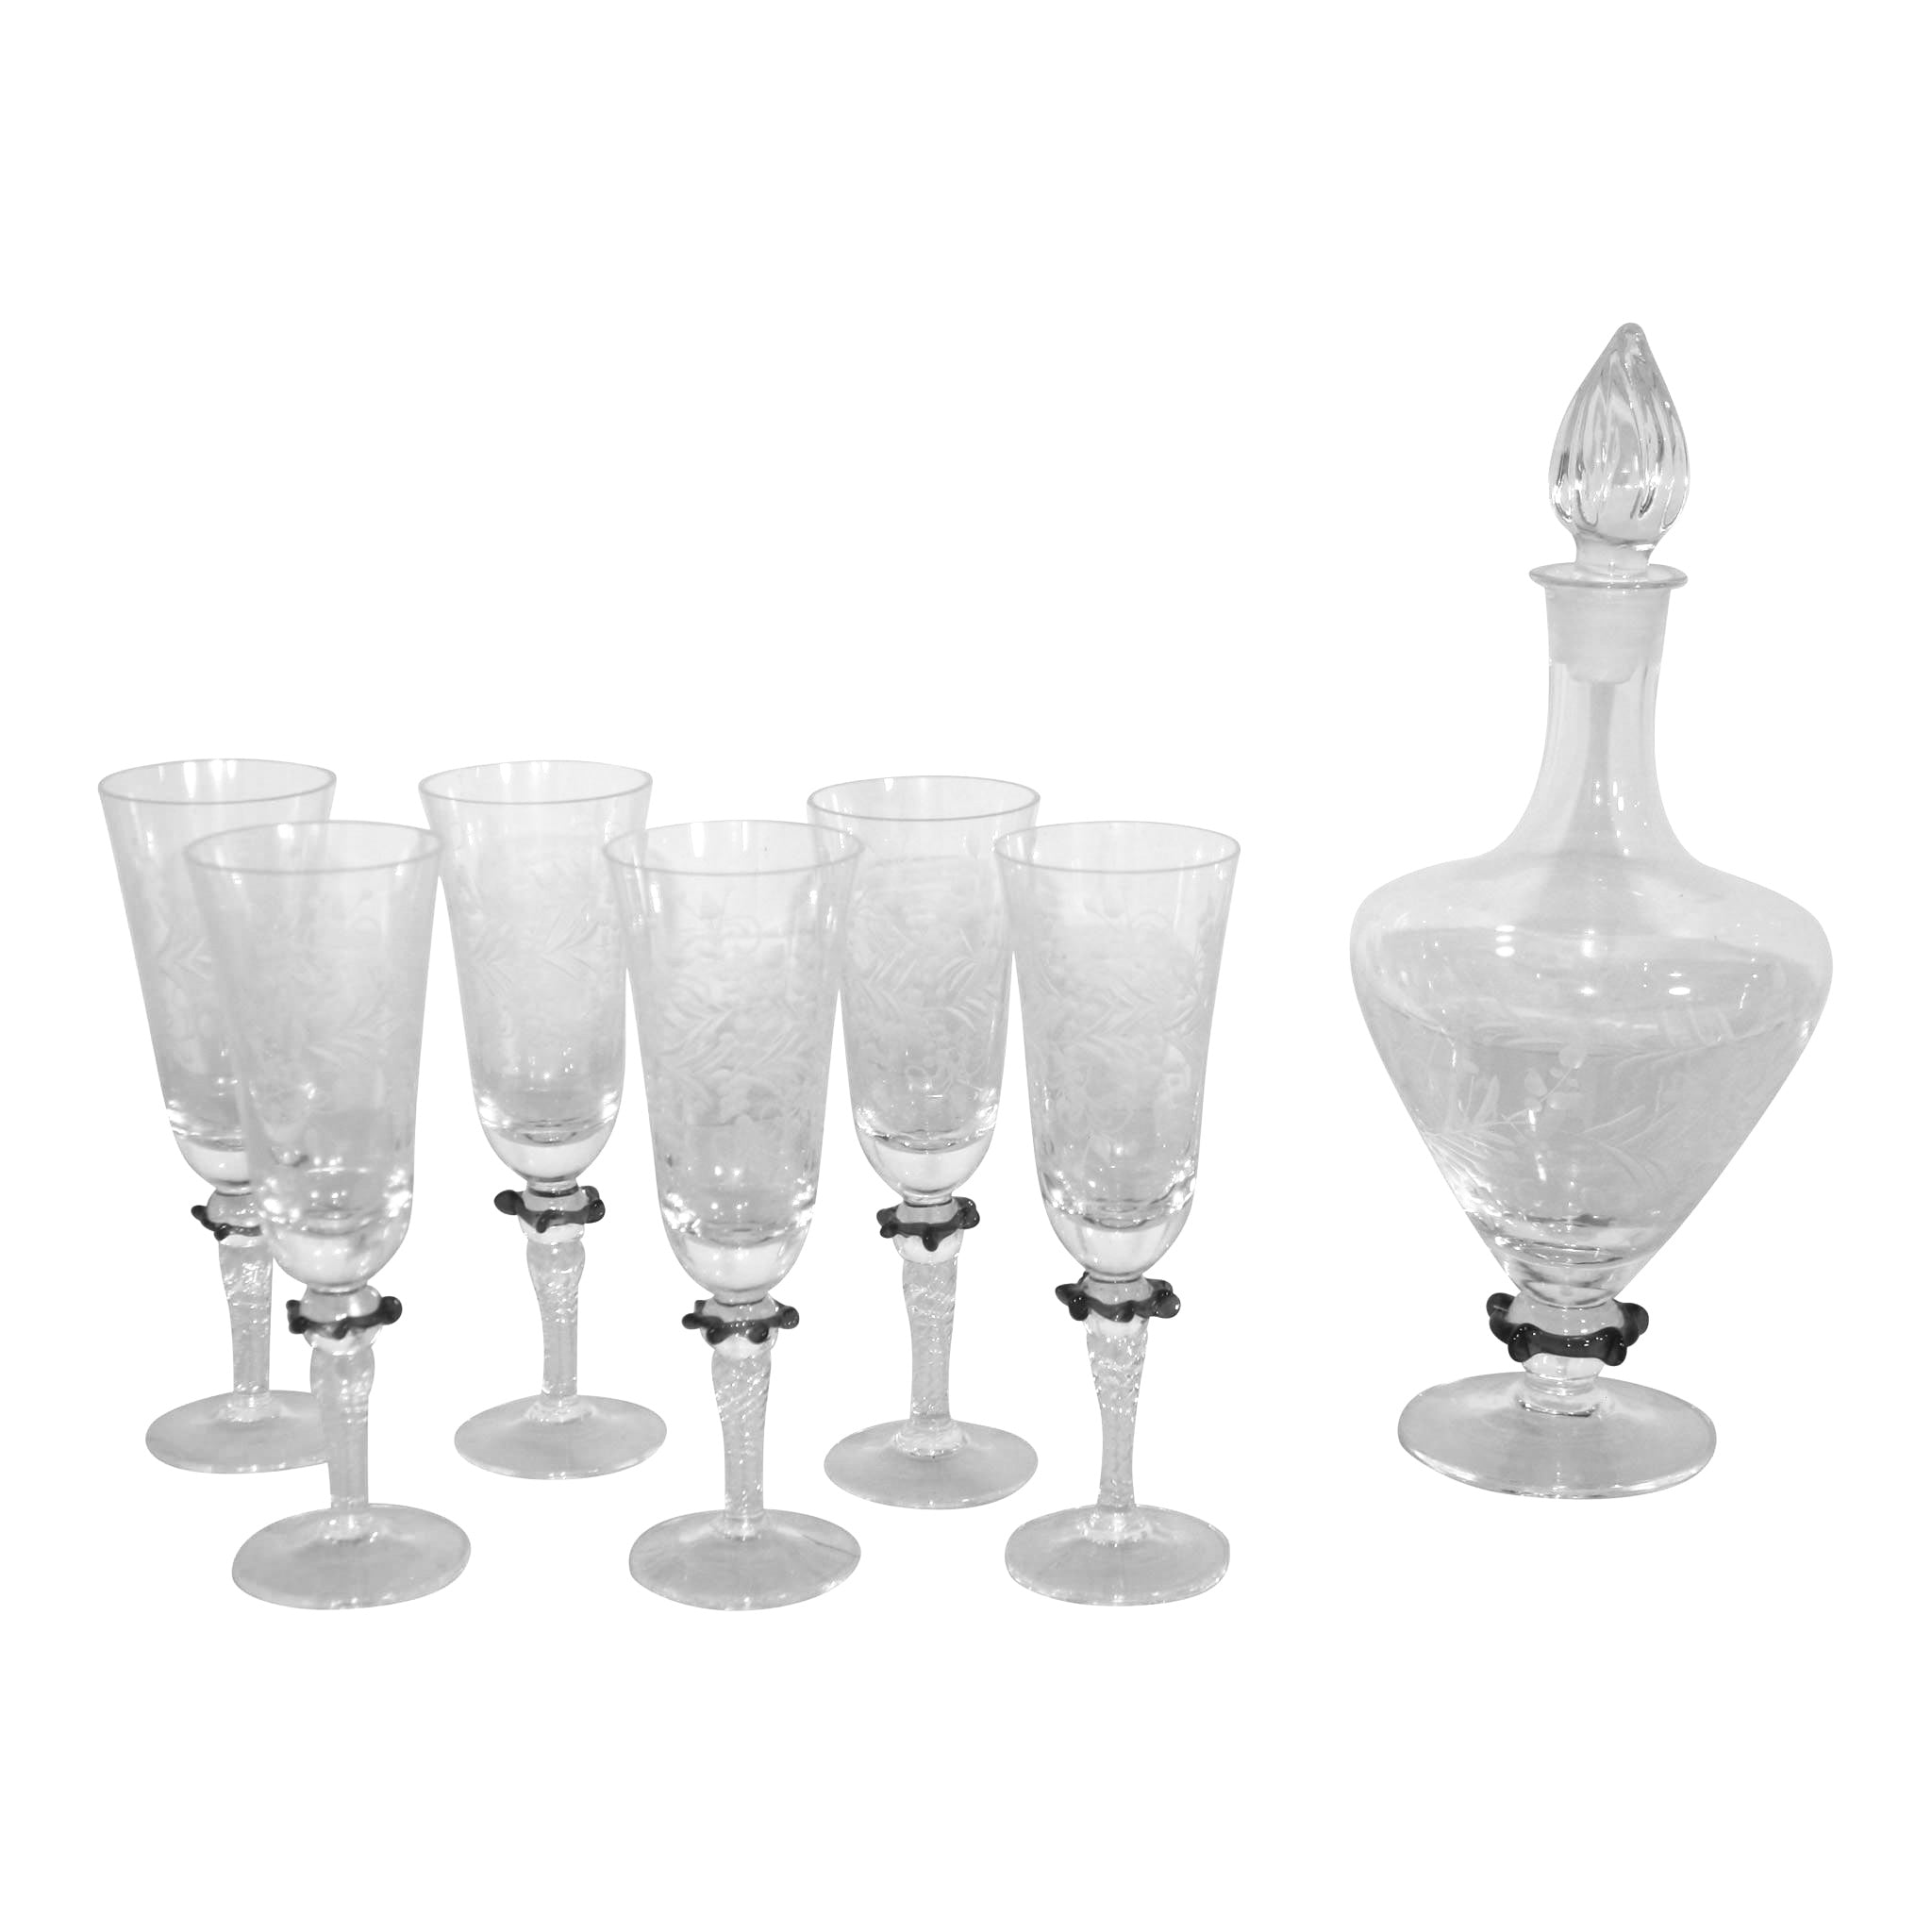 Etched Decanter and Six Champagne Glasses